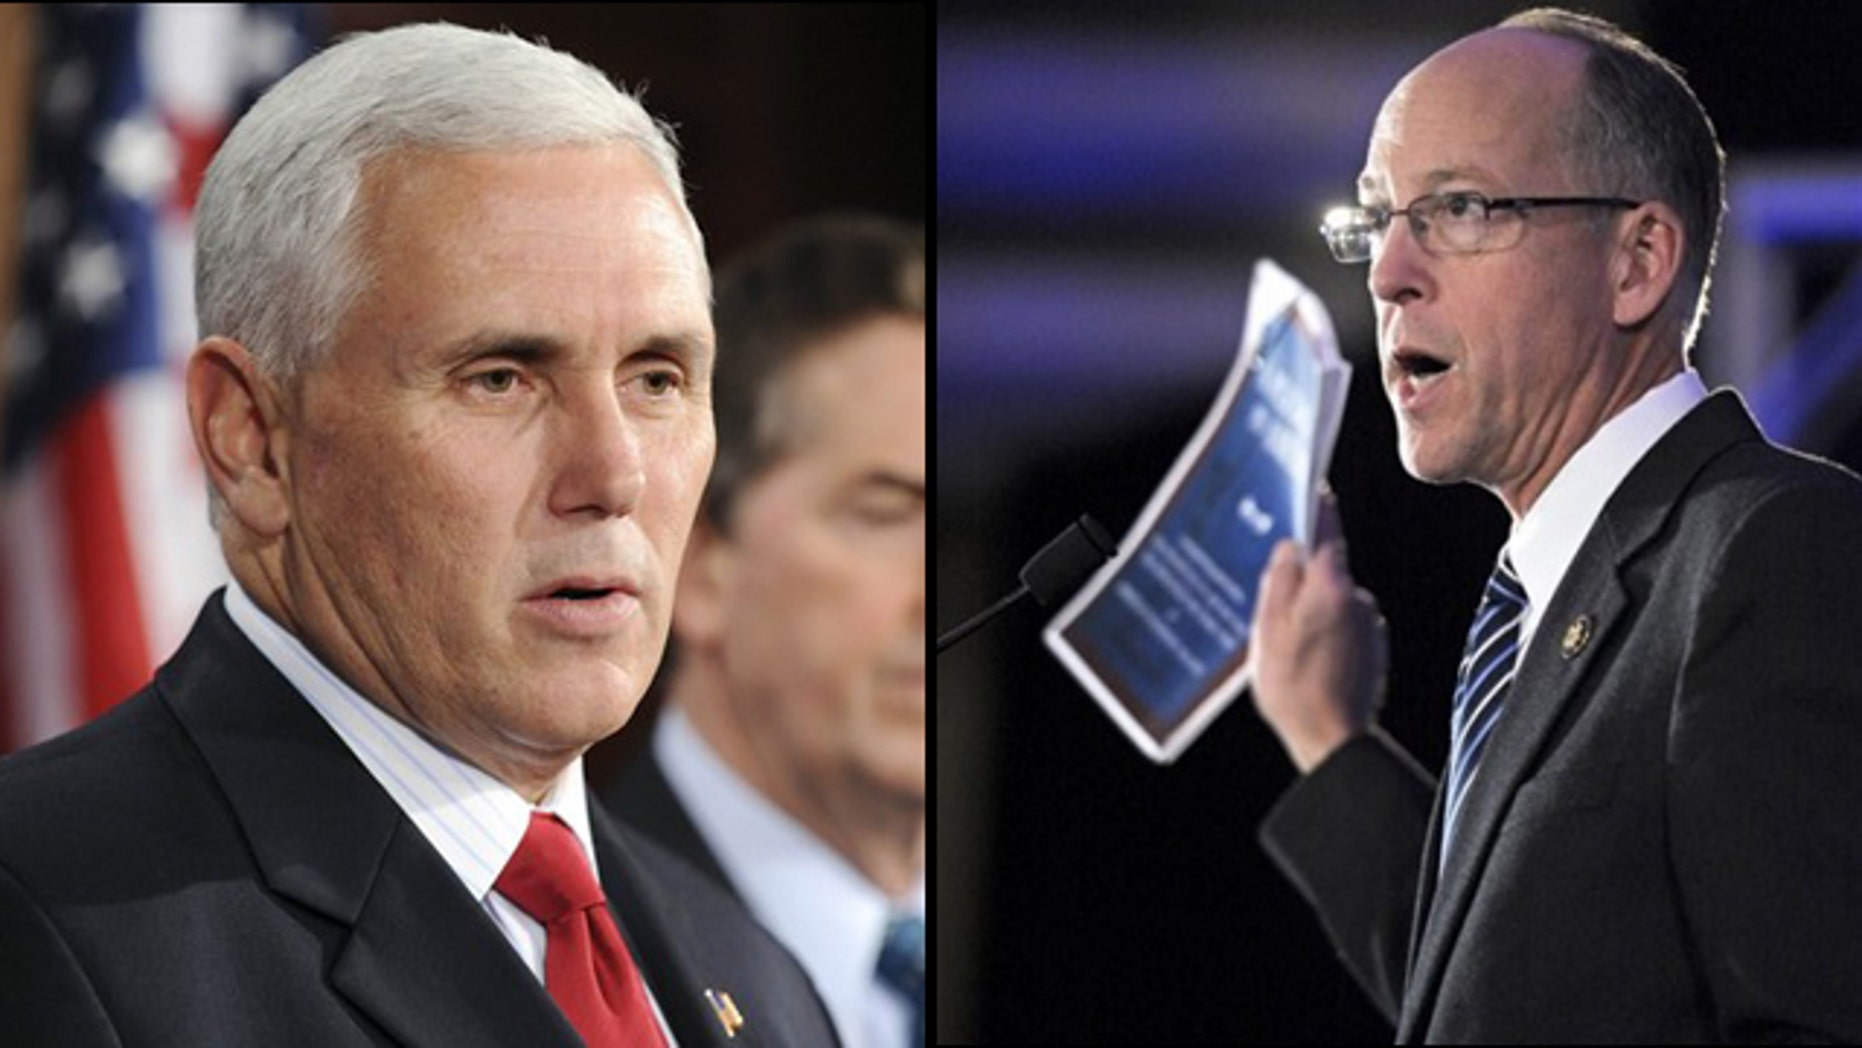 Reps. Mike Pence of Indiana and Greg Walden of Oregon unveiled this week the Broadcaster Freedom Act, which would ban the FCC from forcing broadcasters to give free airtime to opposing sides on controversial issues. (Reuters/AP)